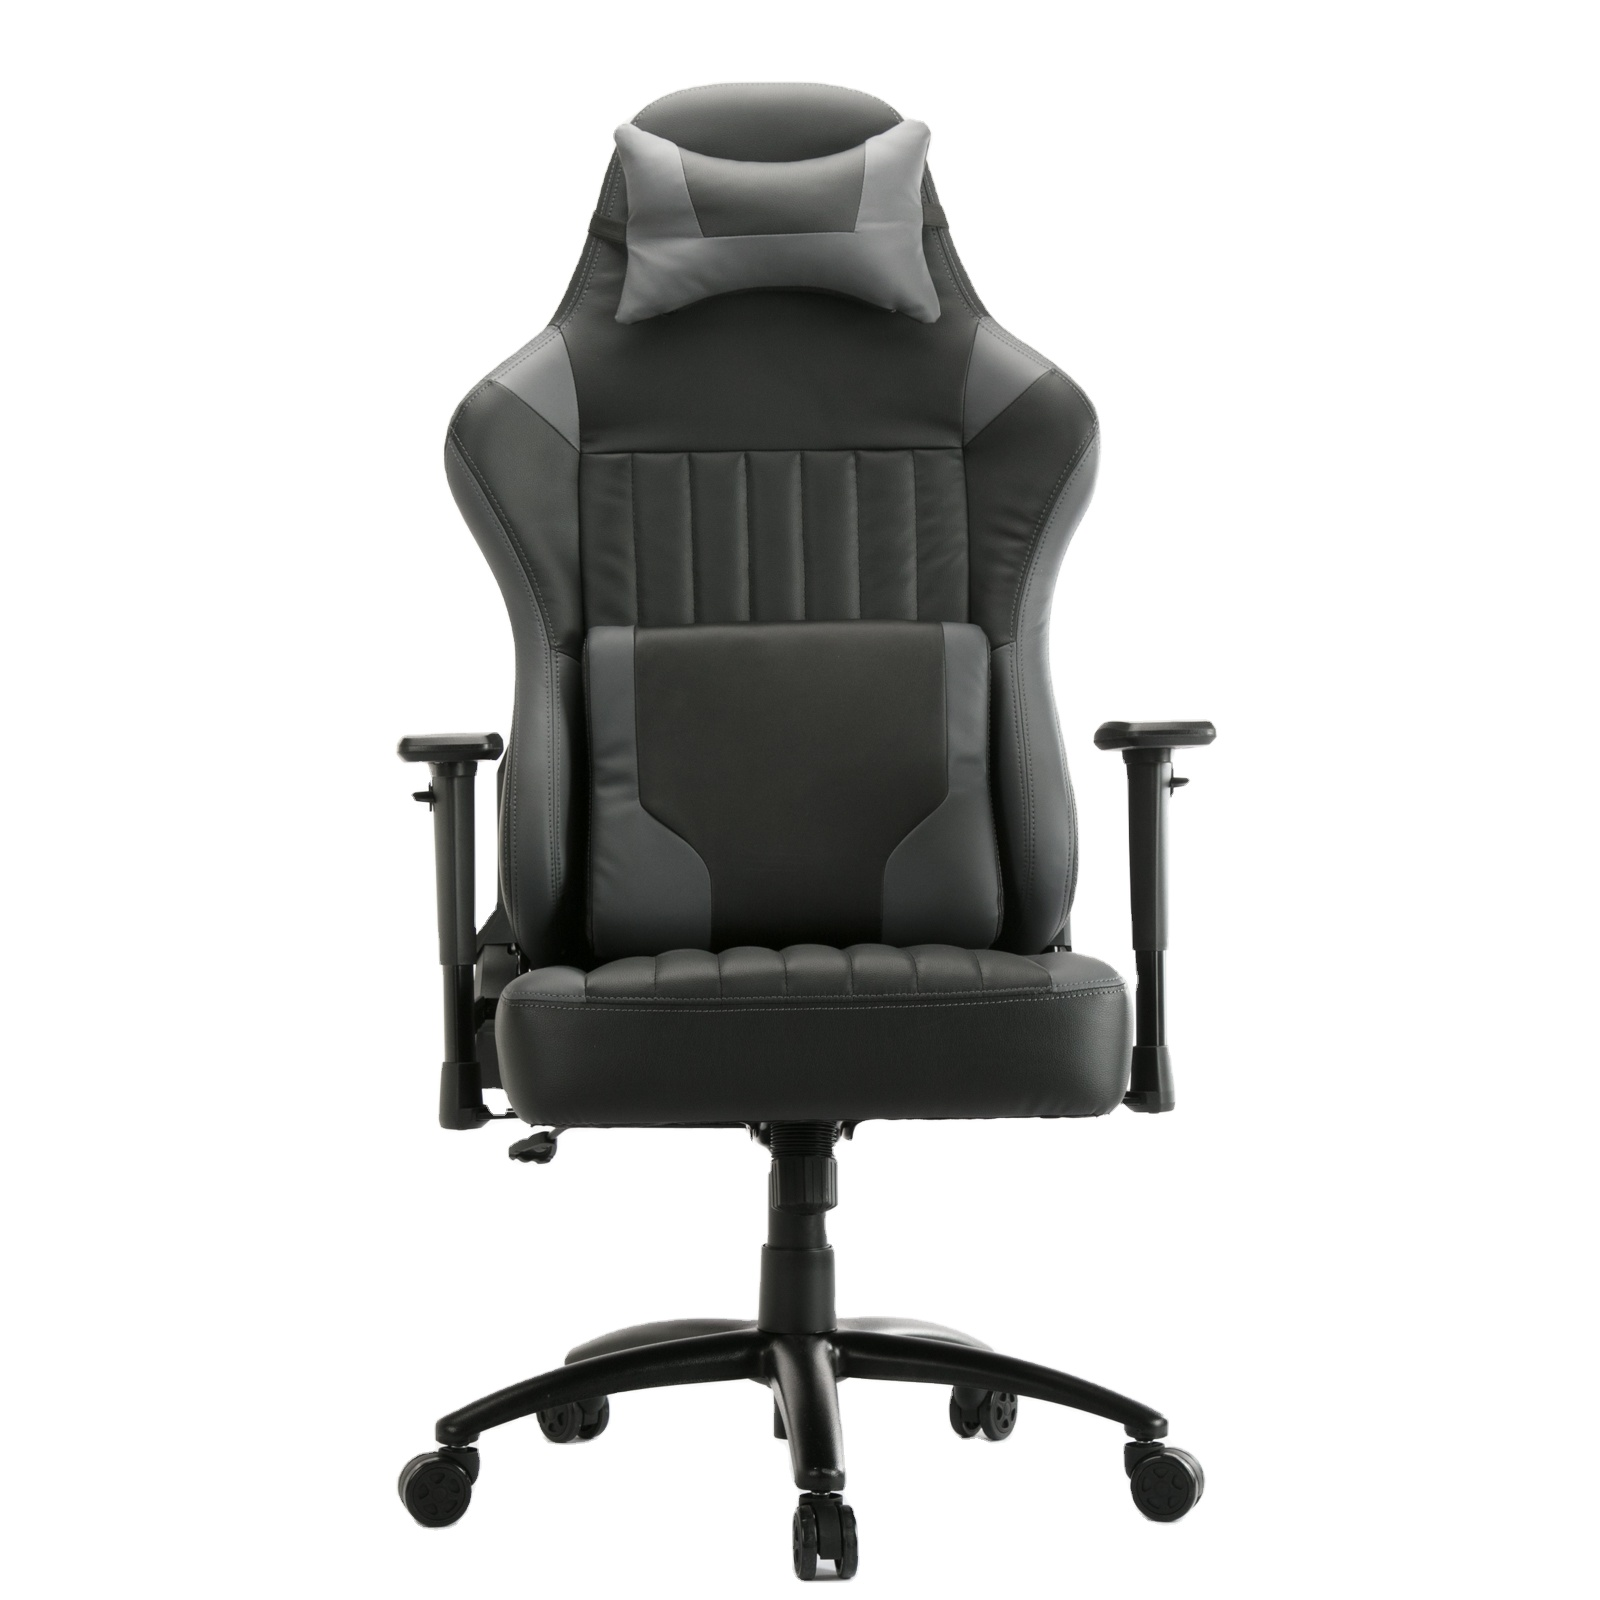 USA STOCK 2020 New design High Backrest Adjustable Ergonomic  Breathable Surface Gaming Chair with Lumbar Support